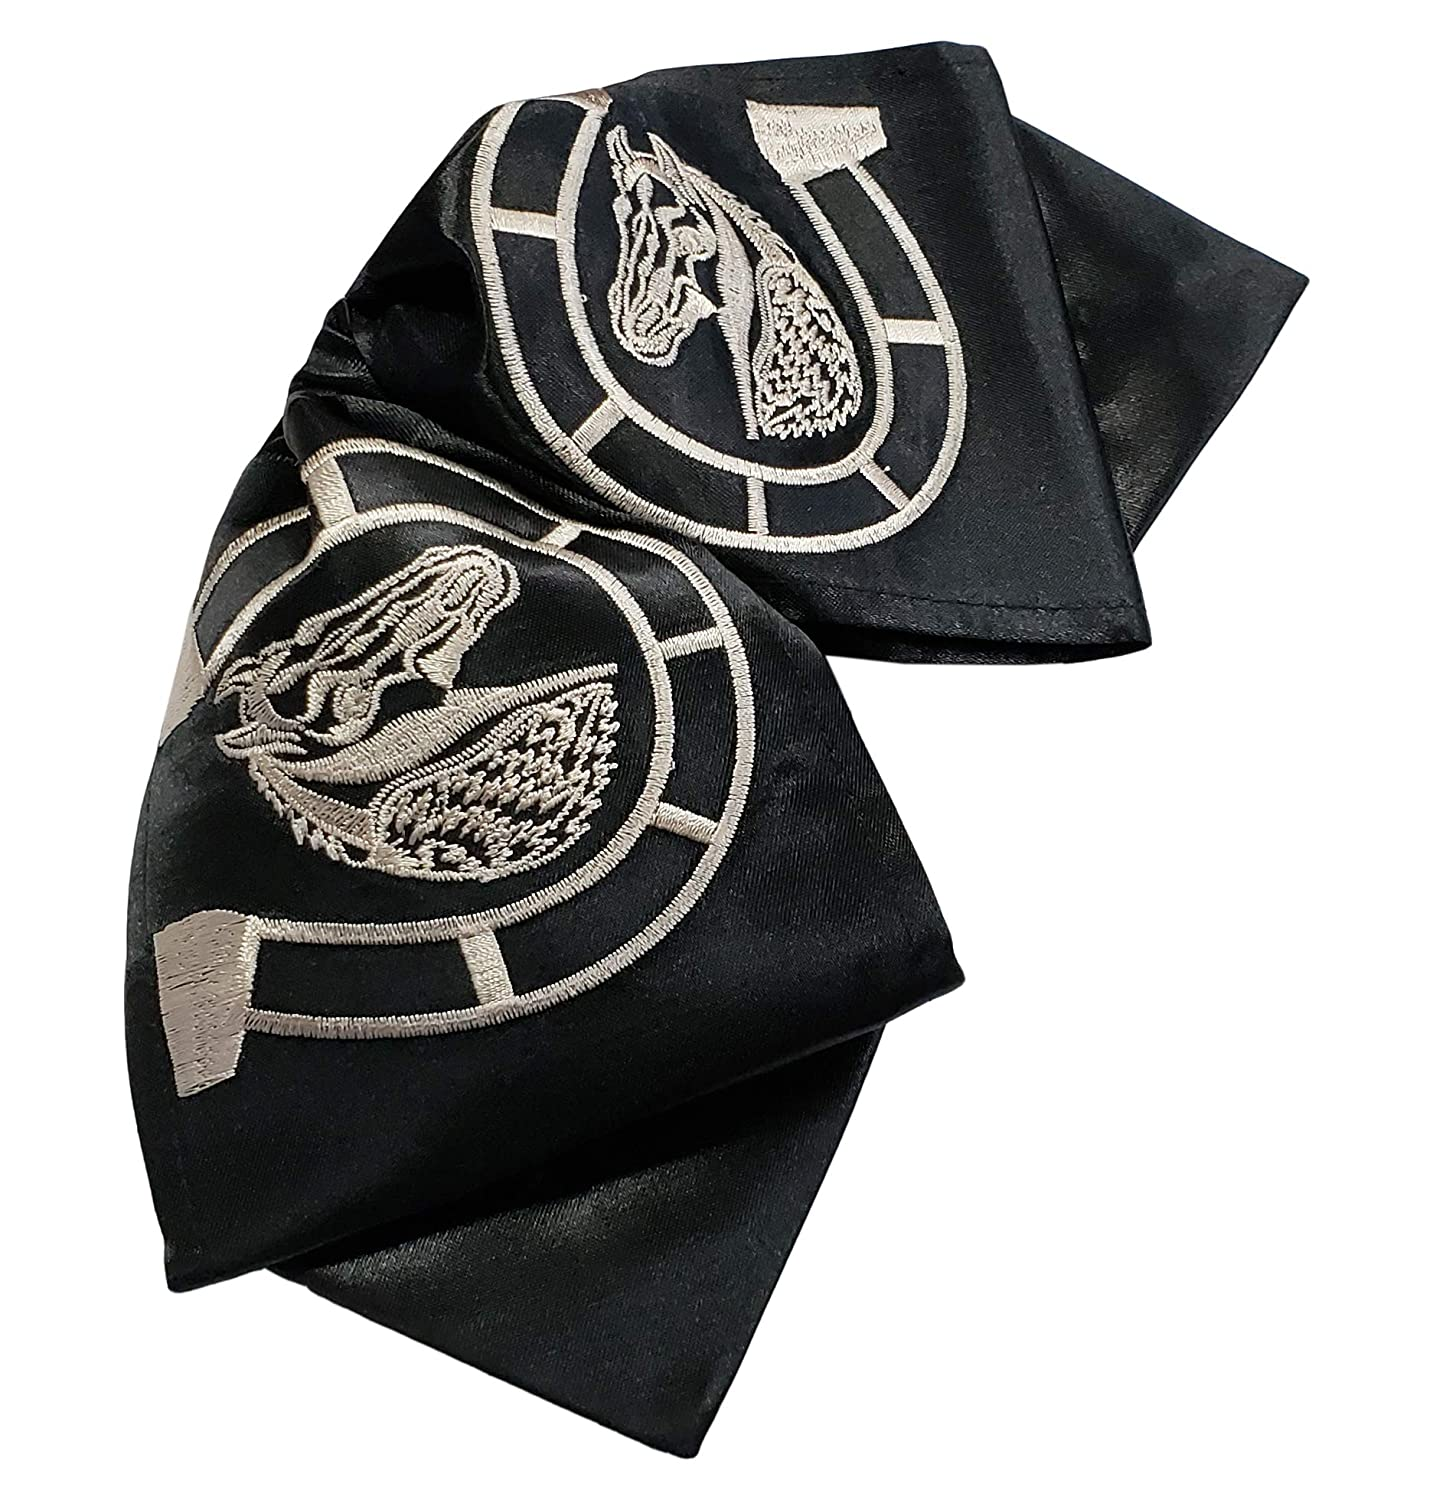 Embroidered Charro Horse Style 3 Bow Tie//Mo/ño